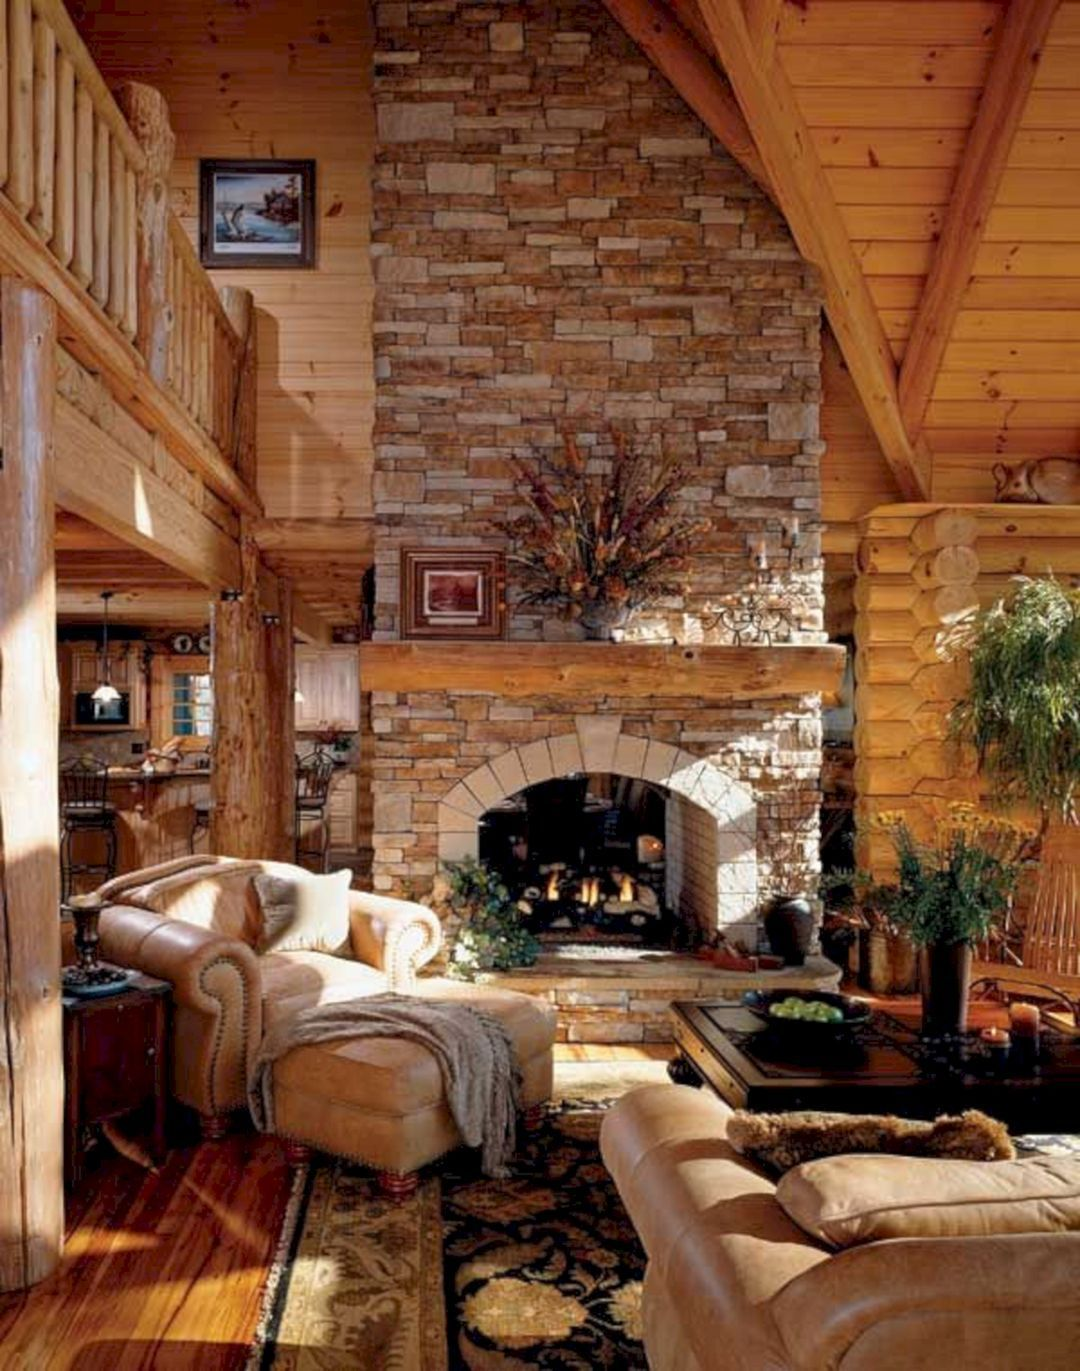 49 Superb Cozy And Rustic Cabin Style Living Rooms Ideas Freshouz Com In 2020 Log Home Living Home Fireplace Log Cabin Living